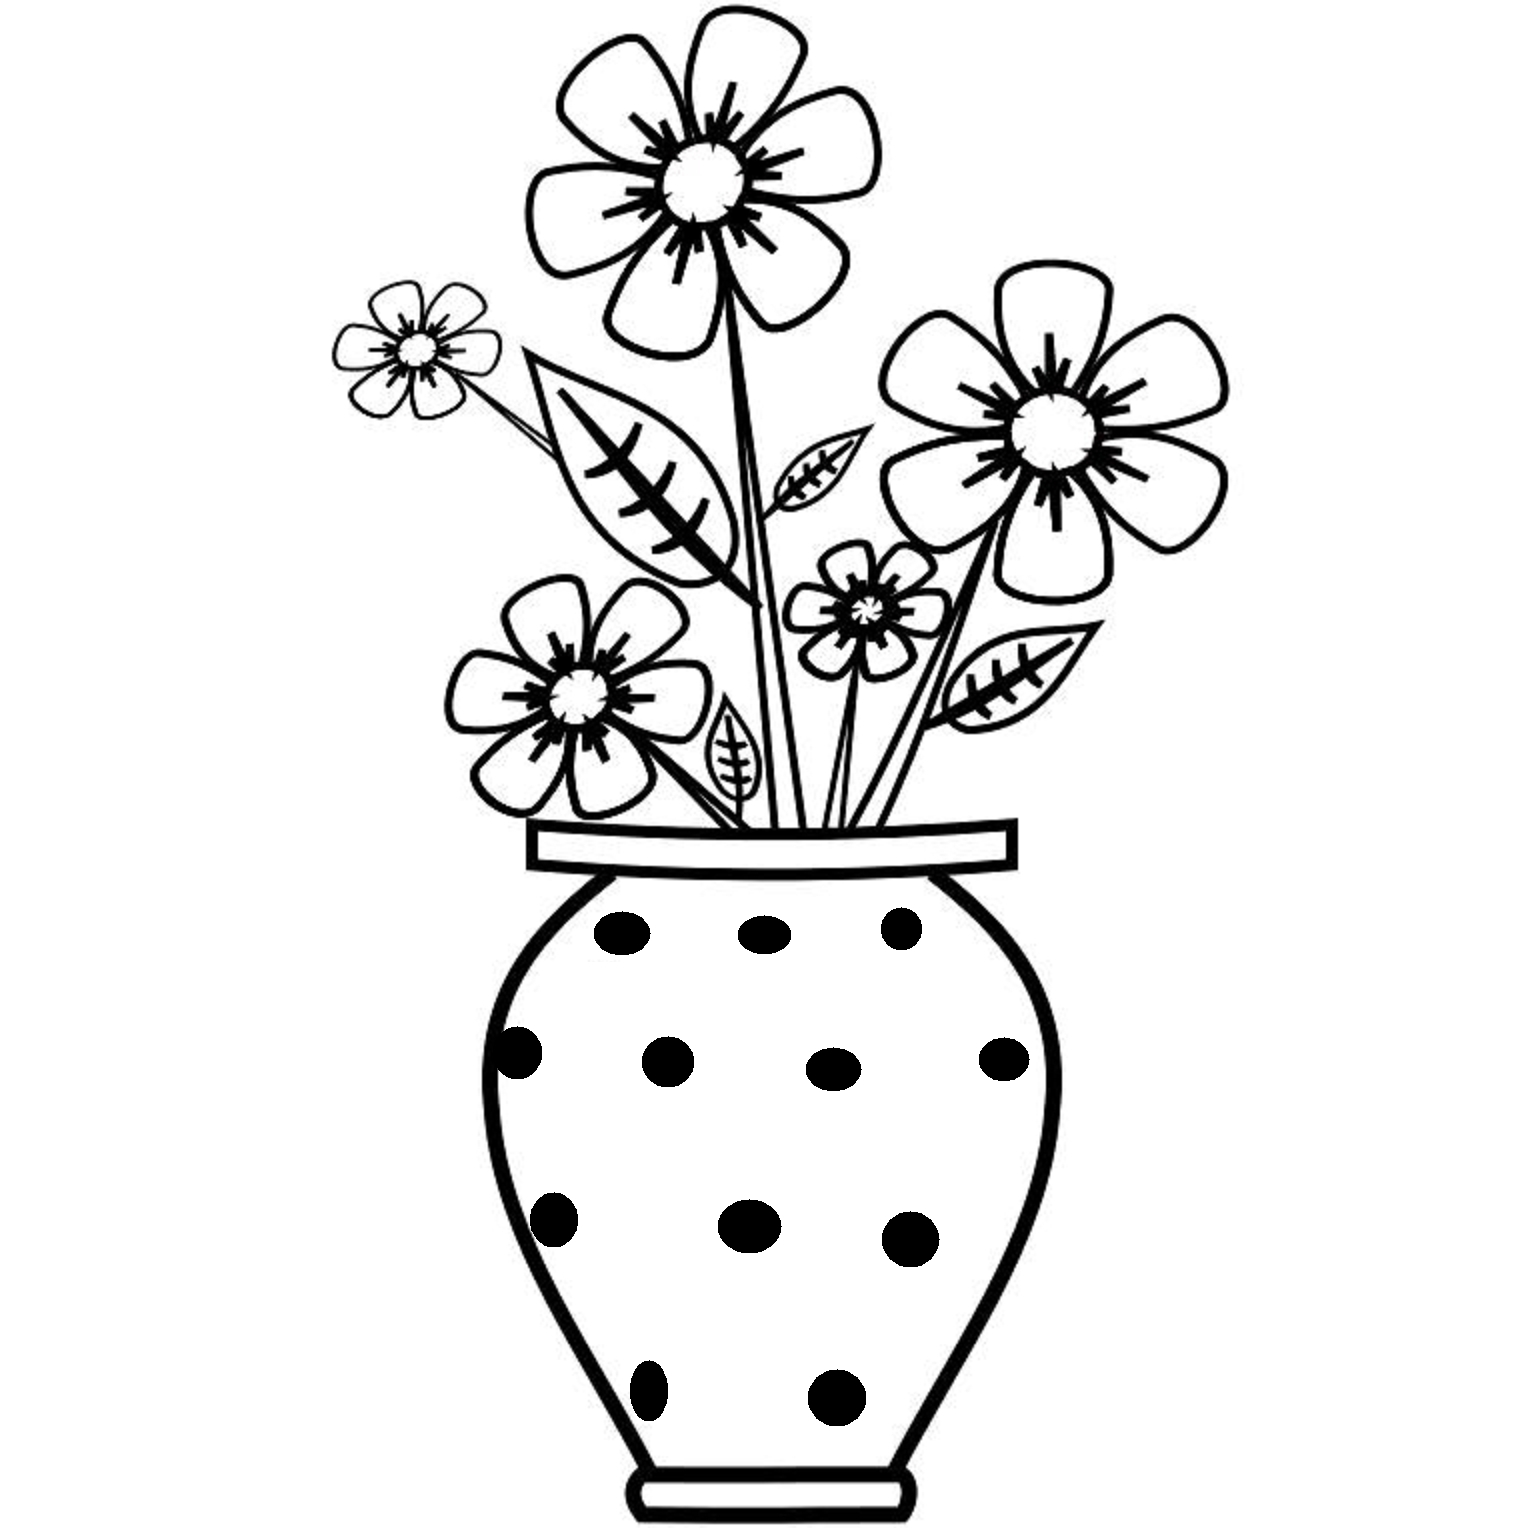 1532x1528 Outline Picture Of Flower Vase Pictures Images Of Flower Vase